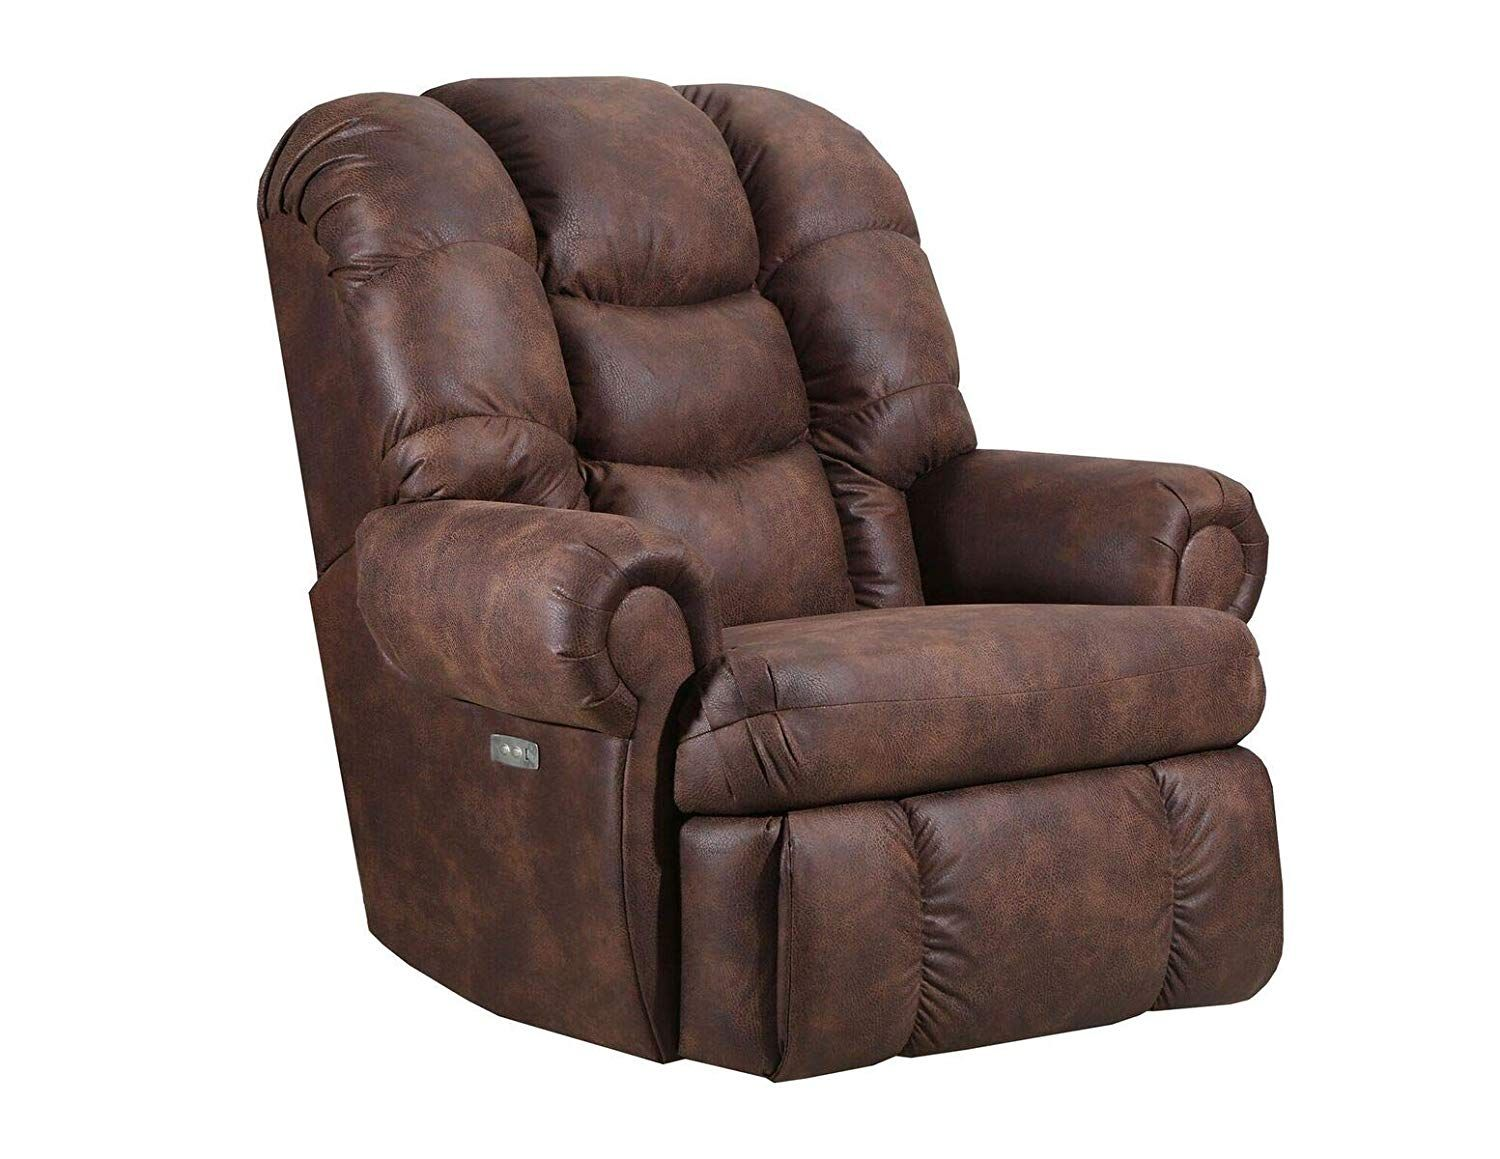 4501 Lane Stallion Big Man Comfort King Wallsaver Recliner In Dorado Walnut Made For The Big Guy Or Ga Rocker Recliners Wall Hugger Recliners Leather Recliner